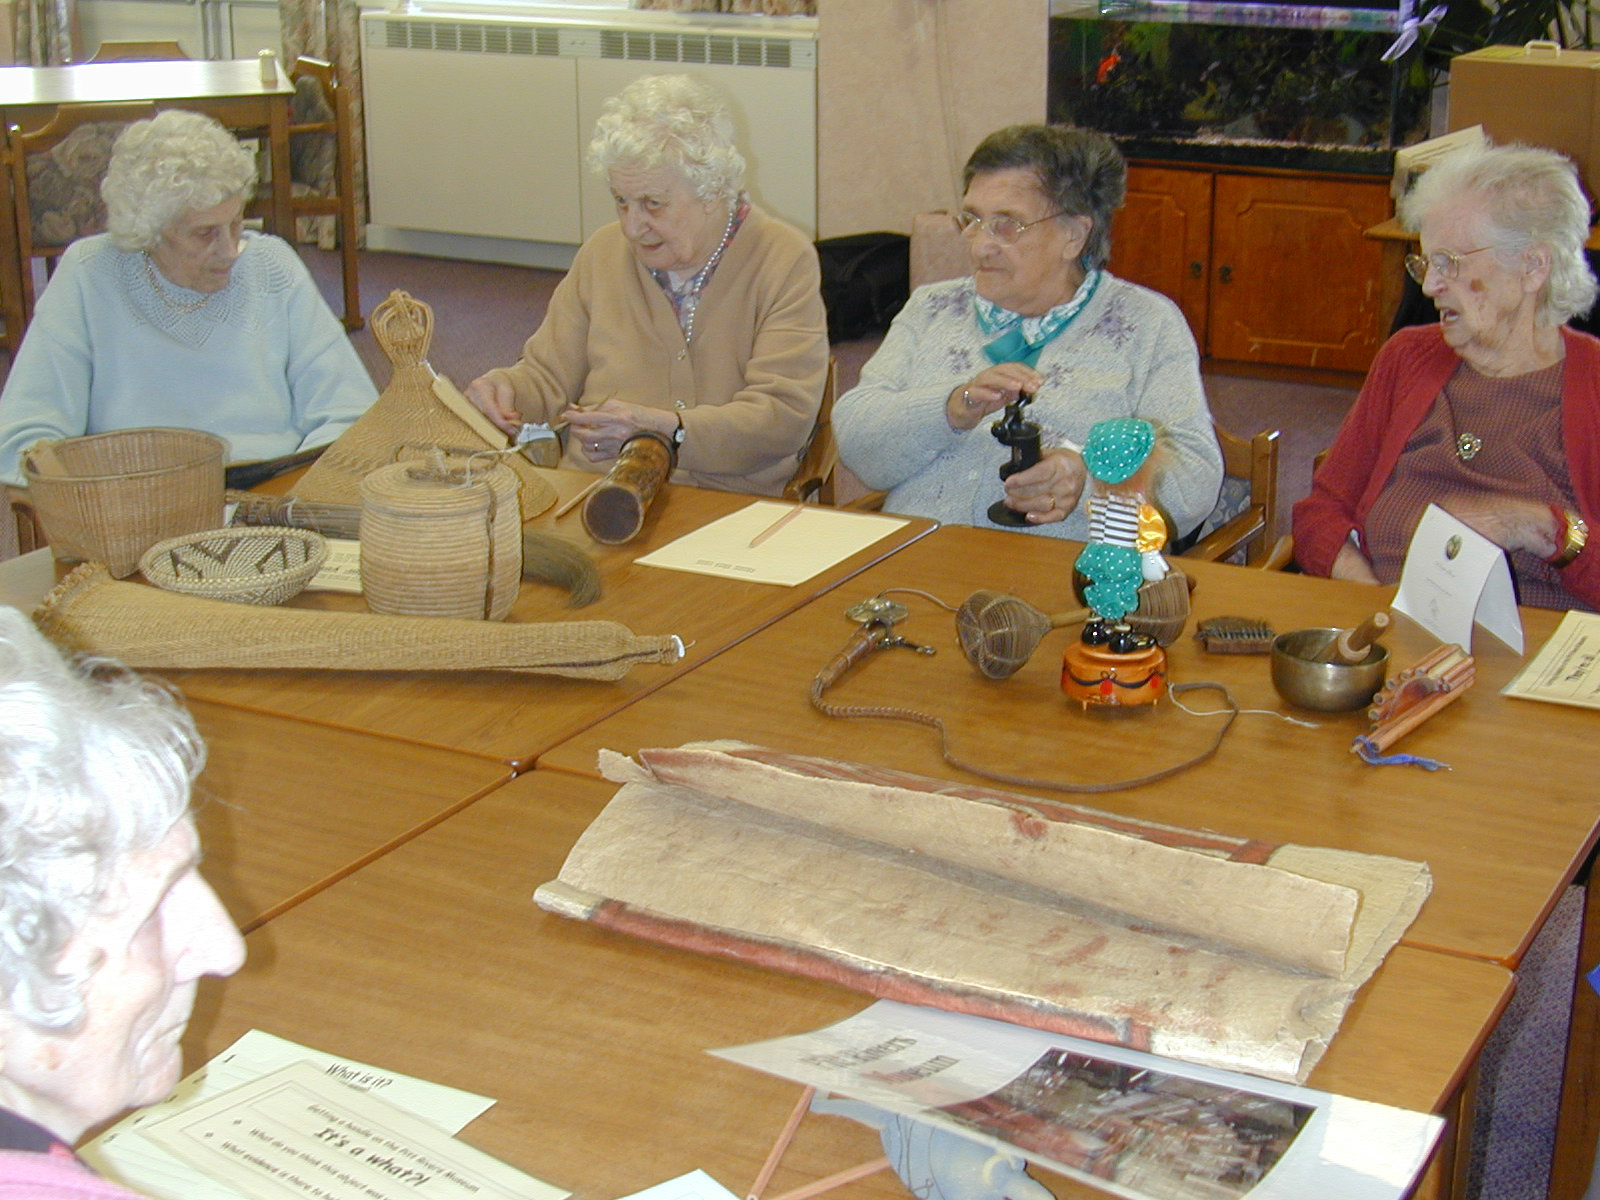 longlands care home, pitt rivers museum basketry project(4)